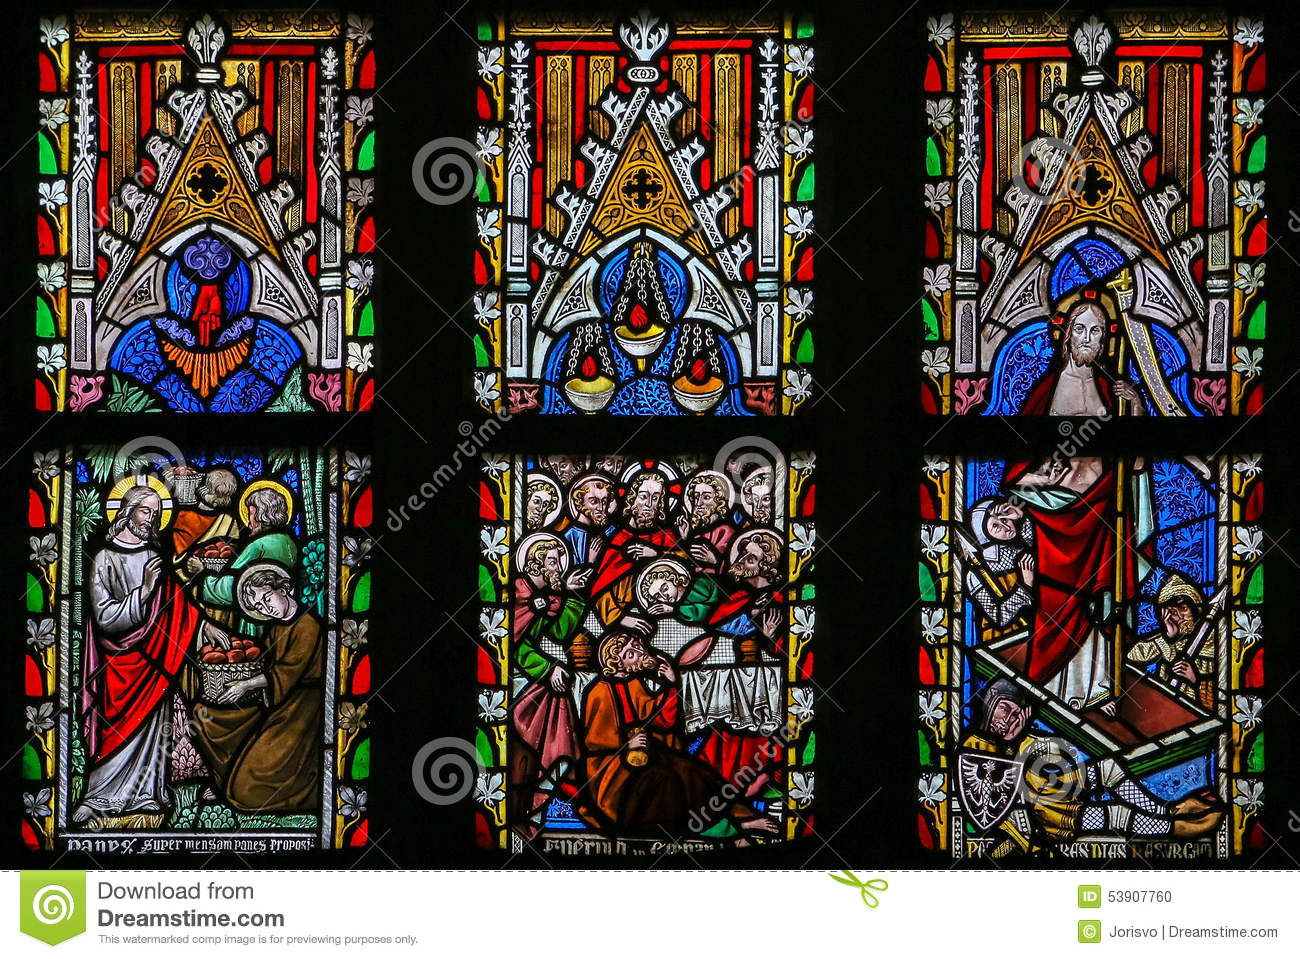 Stained Glass Window Depicting Scenes In The Life Of Jesus Chris.